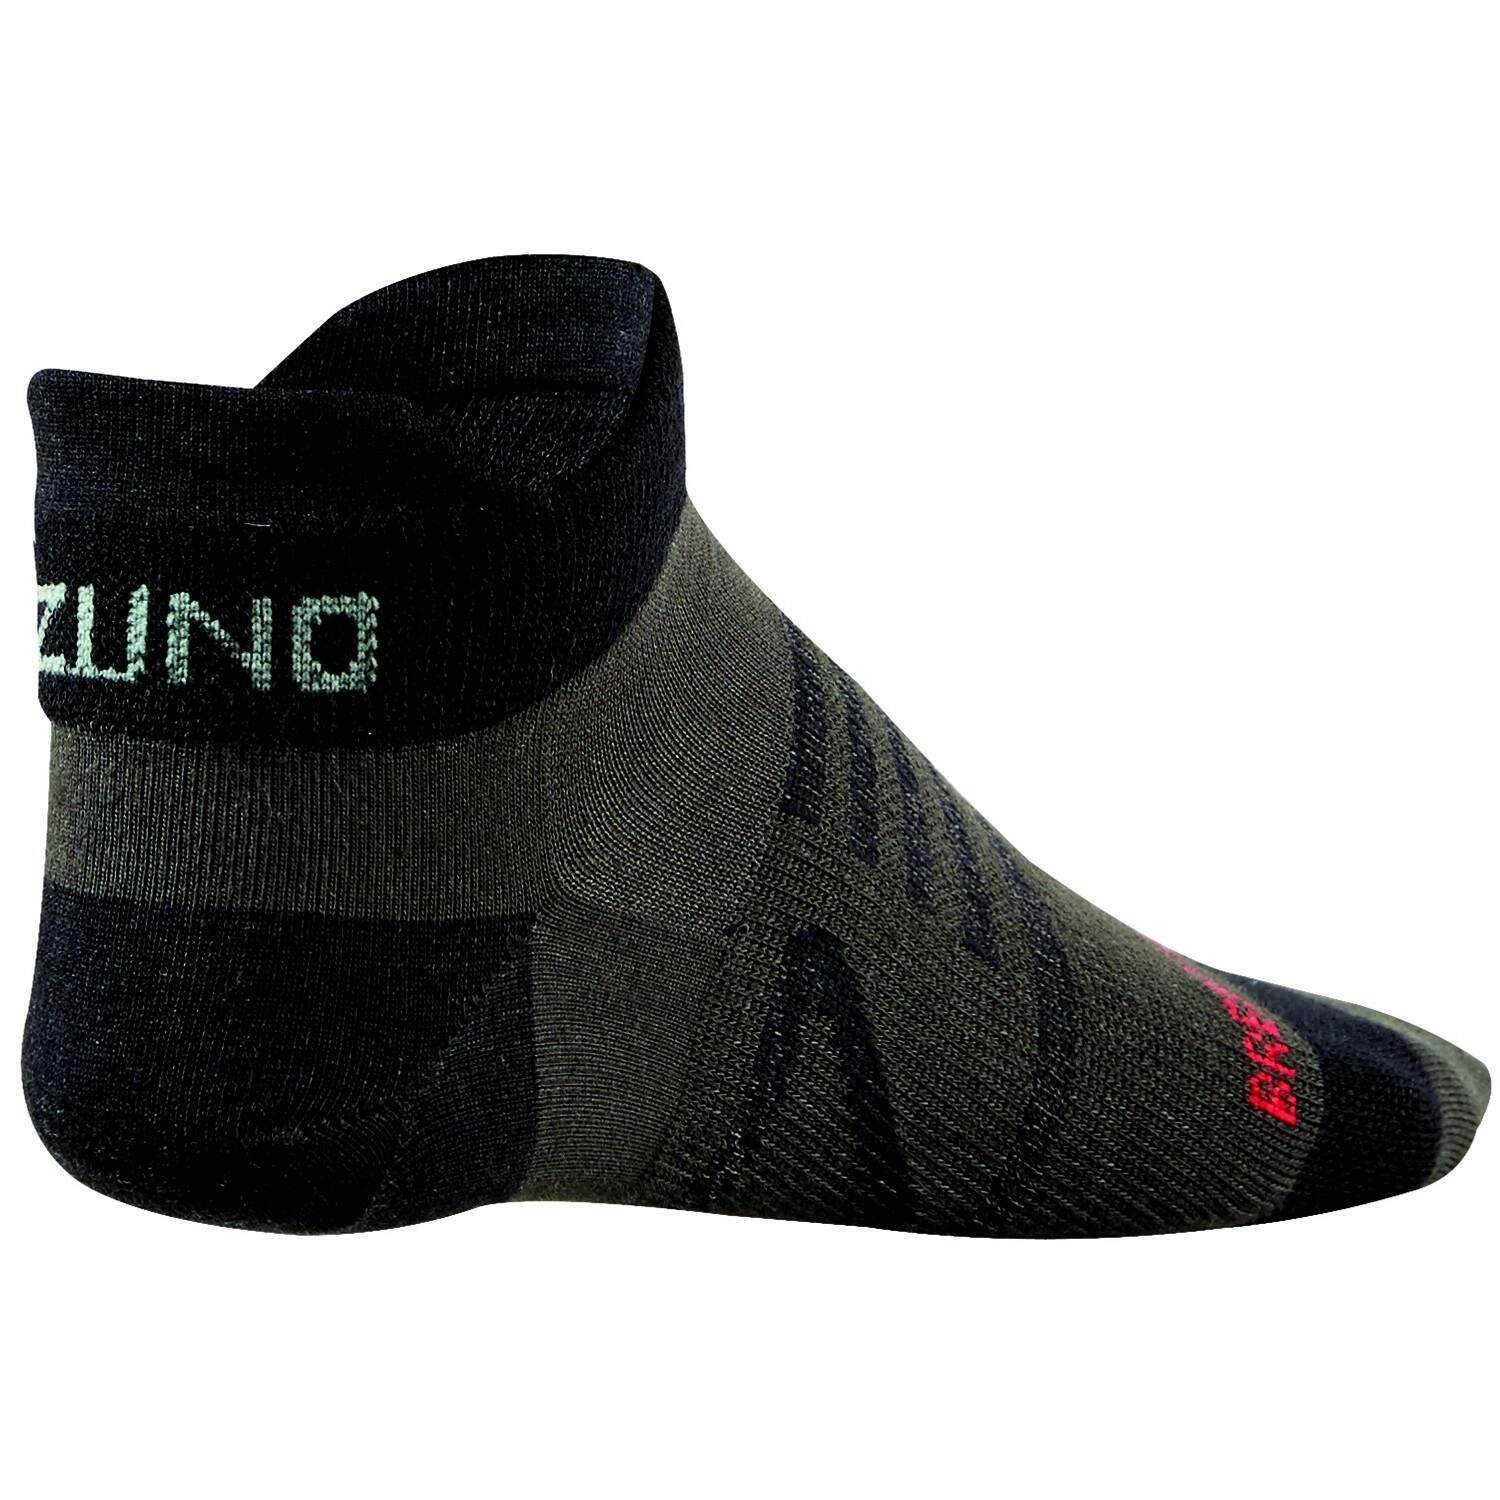 Meia SP Mizuno Breath Thermo